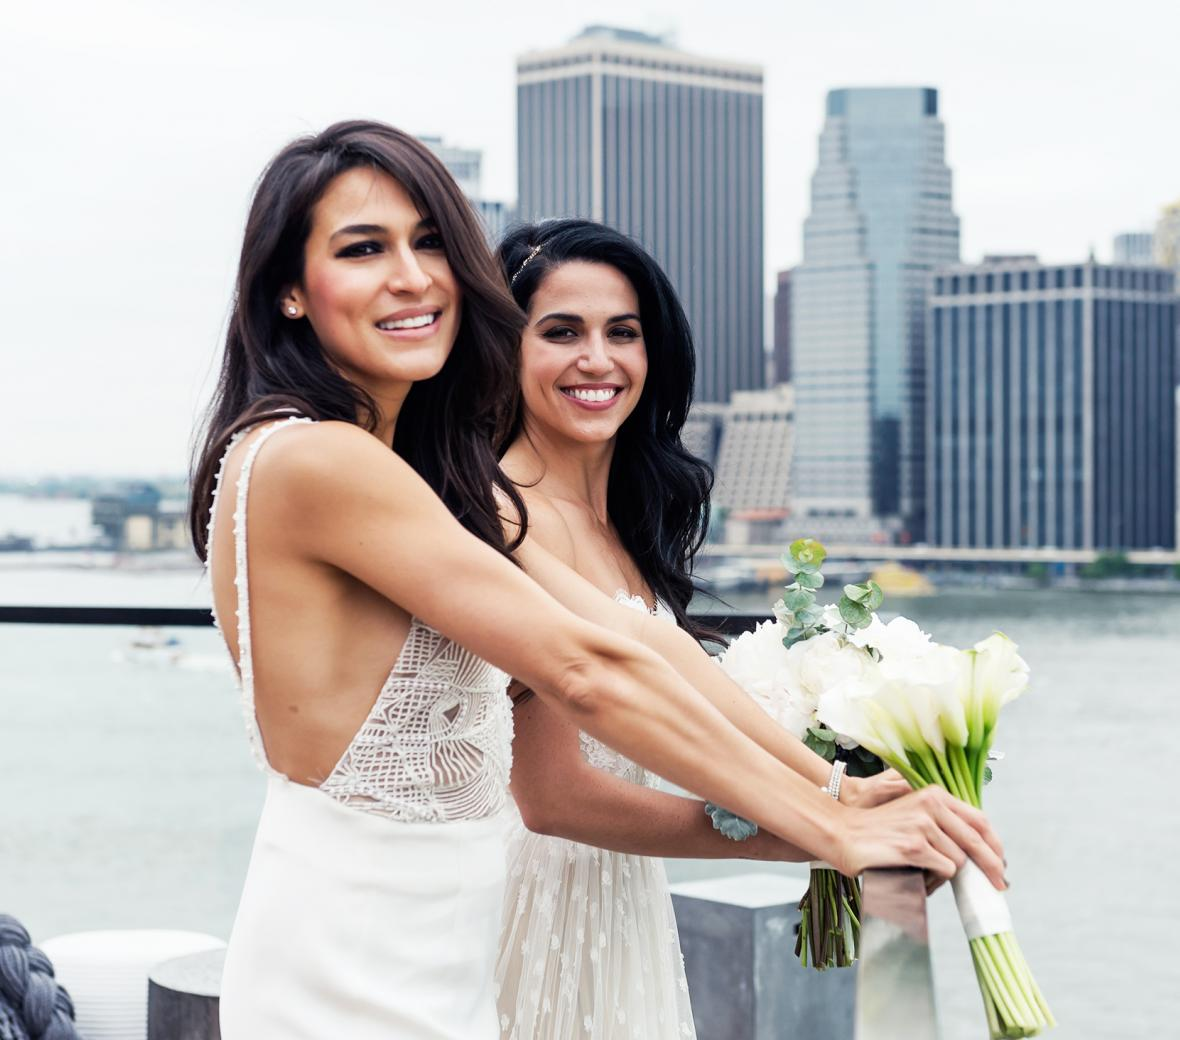 A bride and her maid of honor on a rooftop with a view of Manhattan.